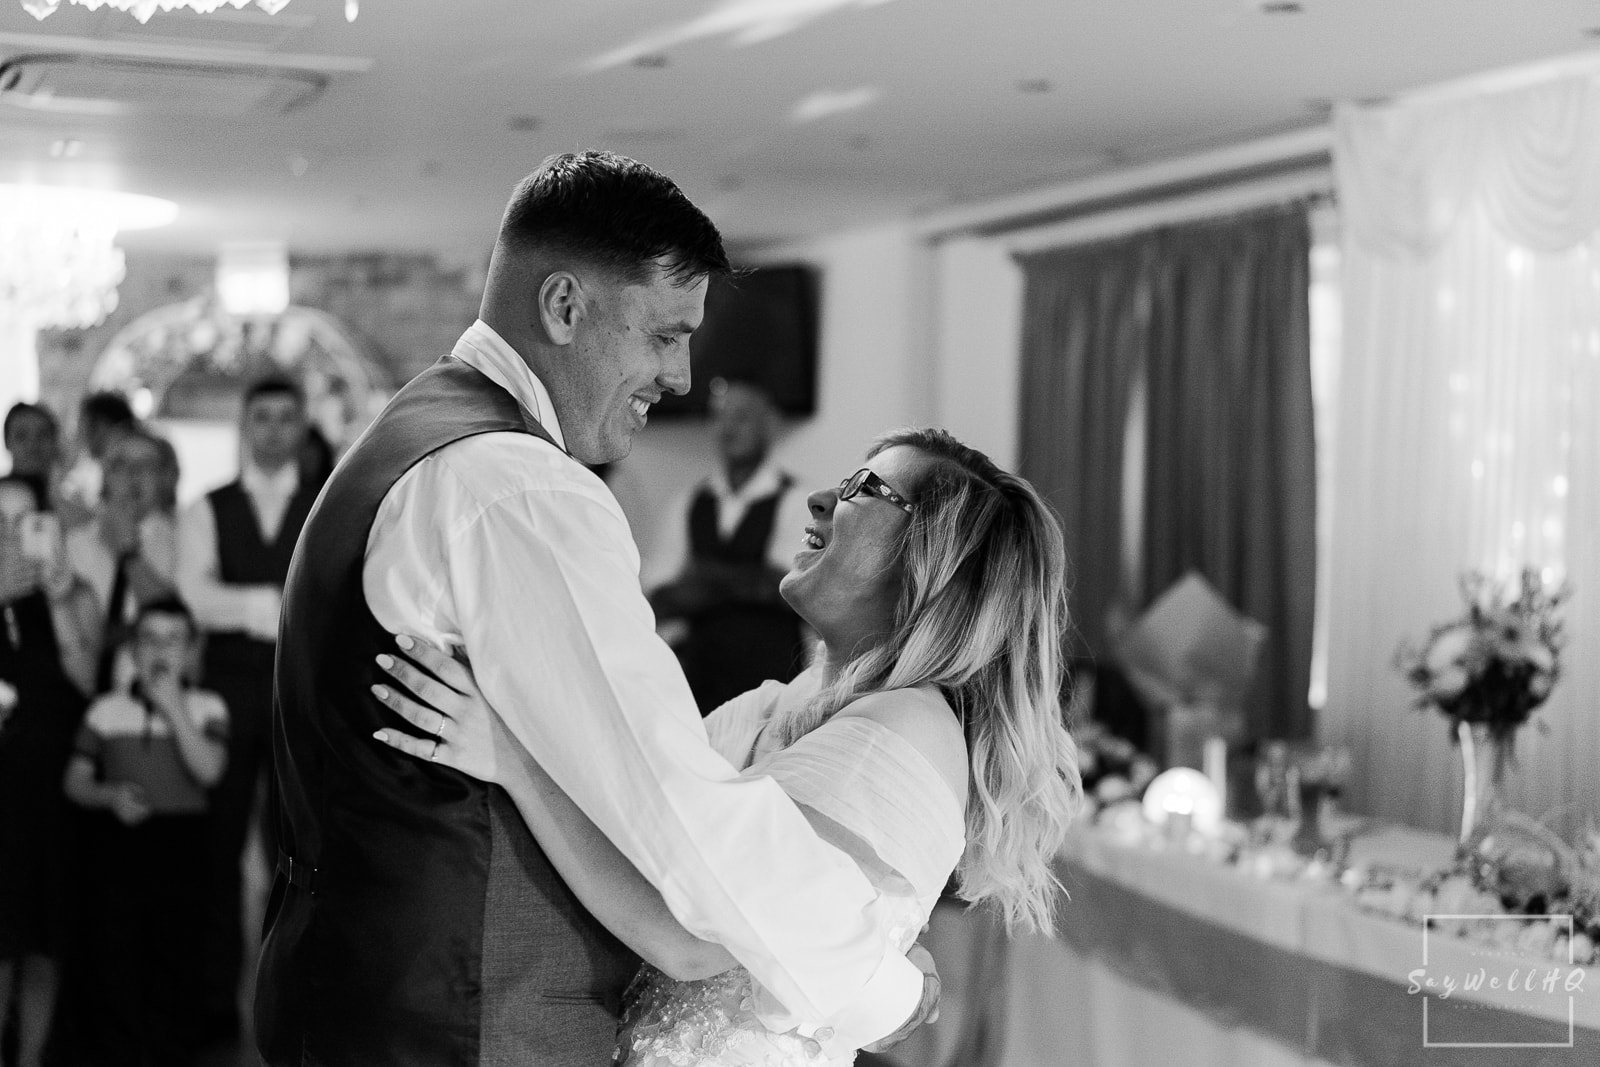 wedding photofilm from the wedding of Mhairi and Carl who were married at the lovely White Hart Inn at Moorwood Moor